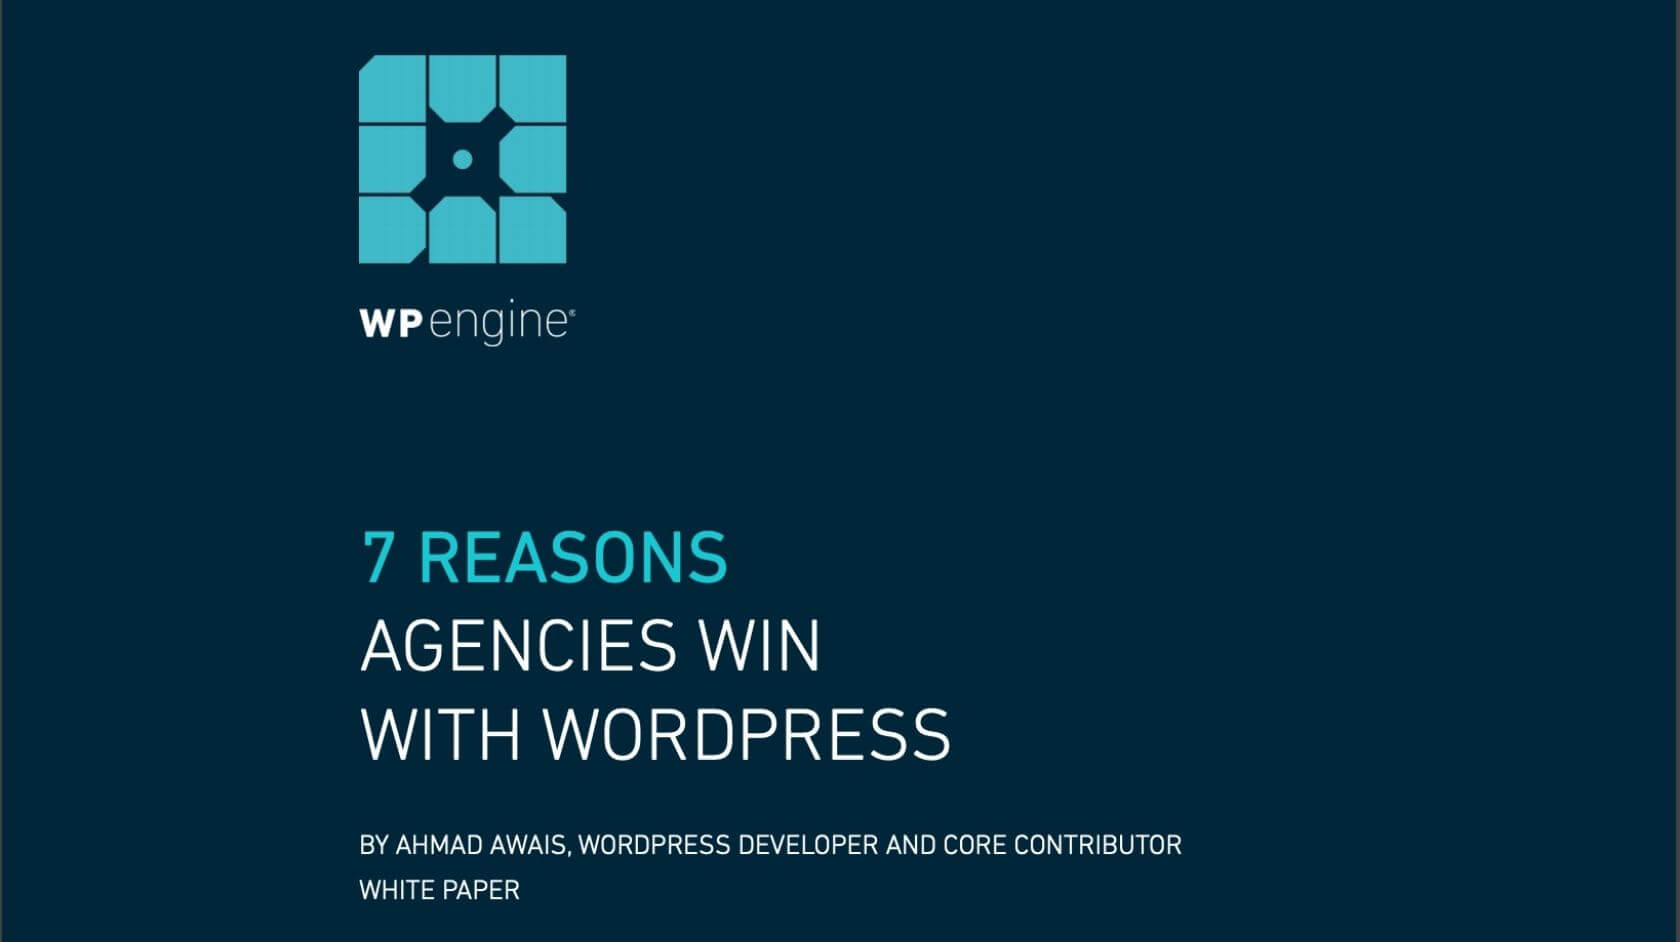 Reasons Agencies Win With WordPress